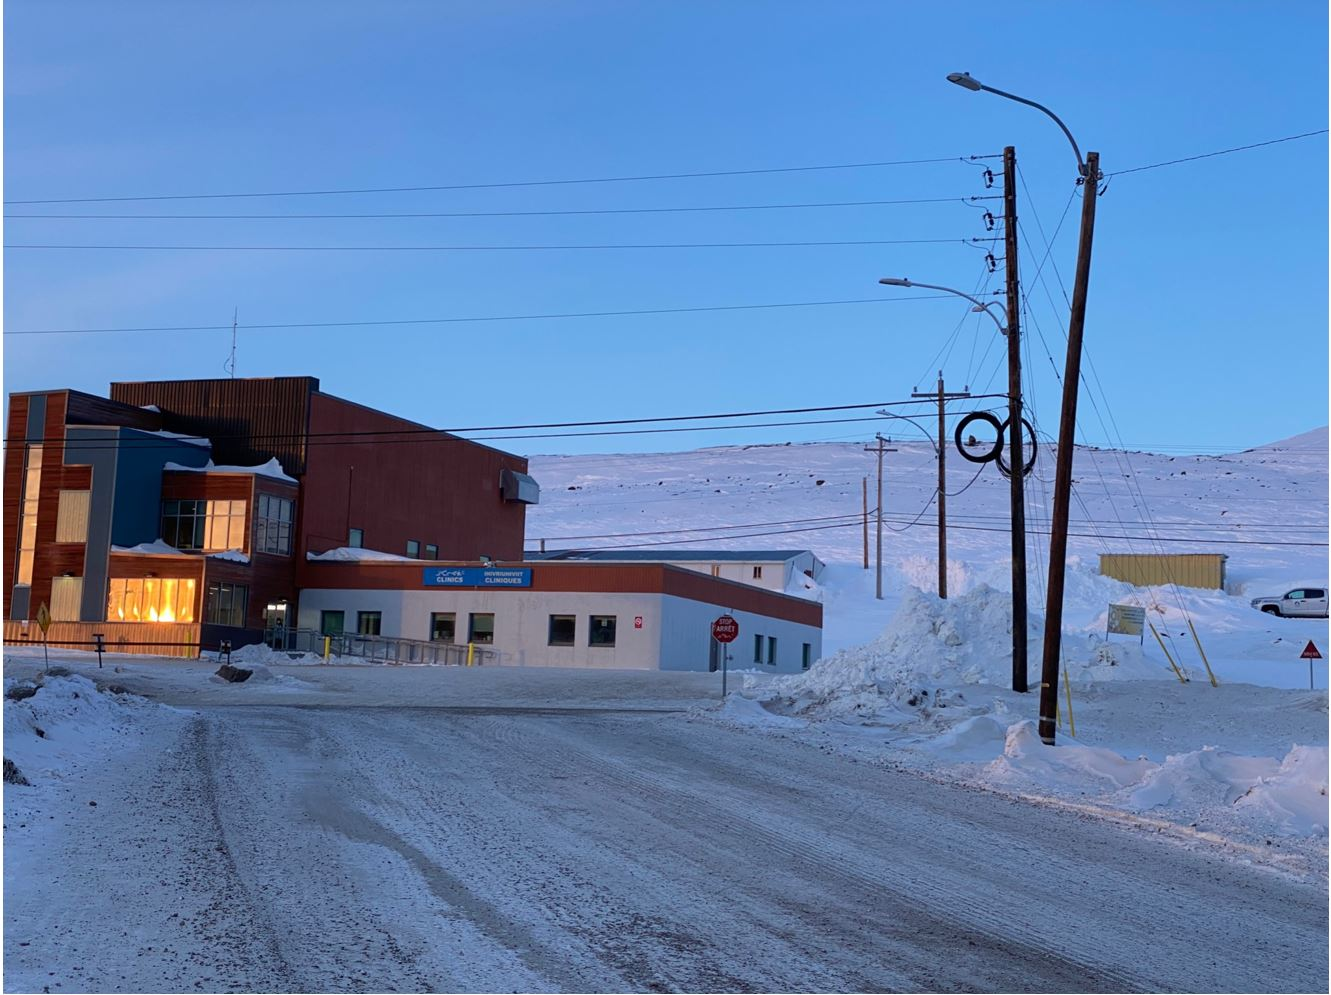 Picture of Baffin regional hospital